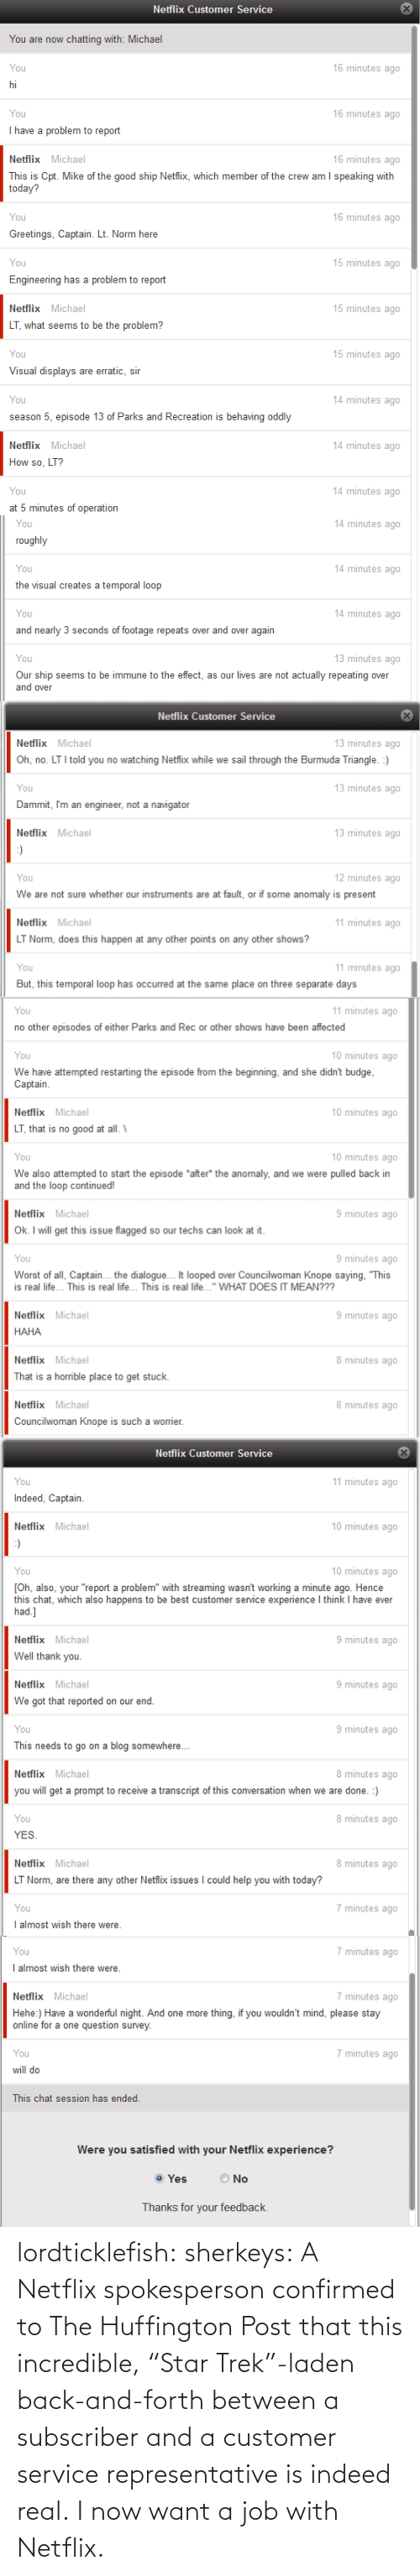 Be Best: Netflix Customer Service  You are now chatting with: Michael  16 minutes ago  You  hi  You  16 minutes ago  I have a problem to report  16 minutes ago  Netflix Michael  This is Cpt. Mike of the good ship Netflix, which member of the crew am I speaking with  today?  16 minutes ago  You  Greetings, Captain. Lt. Norm here  15 minutes ago  You  Engineering has a problem to report  15 minutes ago  Netflix Michael  LT, what seems to be the problem?  15 minutes ago  You  Visual displays are erratic, sir  14 minutes ago  You  season 5, episode 13 of Parks and Recreation is behaving oddly  14 minutes ago  Netflix Michael  How so, LT?  14 minutes ago  You  at 5 minutes of operation   14 minutes ago  You  roughly  14 minutes ago  You  the visual creates a temporal loop  14 minutes ago  You  and nearly 3 seconds of footage repeats over and over again  13 minutes ago  You  Our ship seems to be immune to the effect, as our lives are not actually repeating over  and over  Netflix Customer Service  13 minutes ago  Netflix Michael  Oh, no. LT I told you no watching Netfix while we sail through the Burmuda Triangle. :)  13 minutes ago  You  Dammit, I'm an engineer, not a navigator  13 minutes ago  Netflix Michael  :)  12 minutes ago  You  We are not sure whether our instruments are at fault, or if some anomaly is present  11 minutes ago  Netflix Michael  LT Norm, does this happen at any other points on any other shows?  11 minutes ago  You  But, this temporal loop has occurred at the same place on three separate days   11 minutes ago  You  no other episodes of either Parks and Rec or other shows have been affected  10 minutes ago  You  We have attempted restarting the episode from the beginning, and she didn't budge,  Captain.  10 minutes ago  Netflix Michael  LT, that is no good at all. \  10 minutes ago  You  We also attempted to start the episode *after* the anomaly, and we were pulled back in  and the loop continued!  Netflix Michael  9 minutes ago  Ok. I will get this i